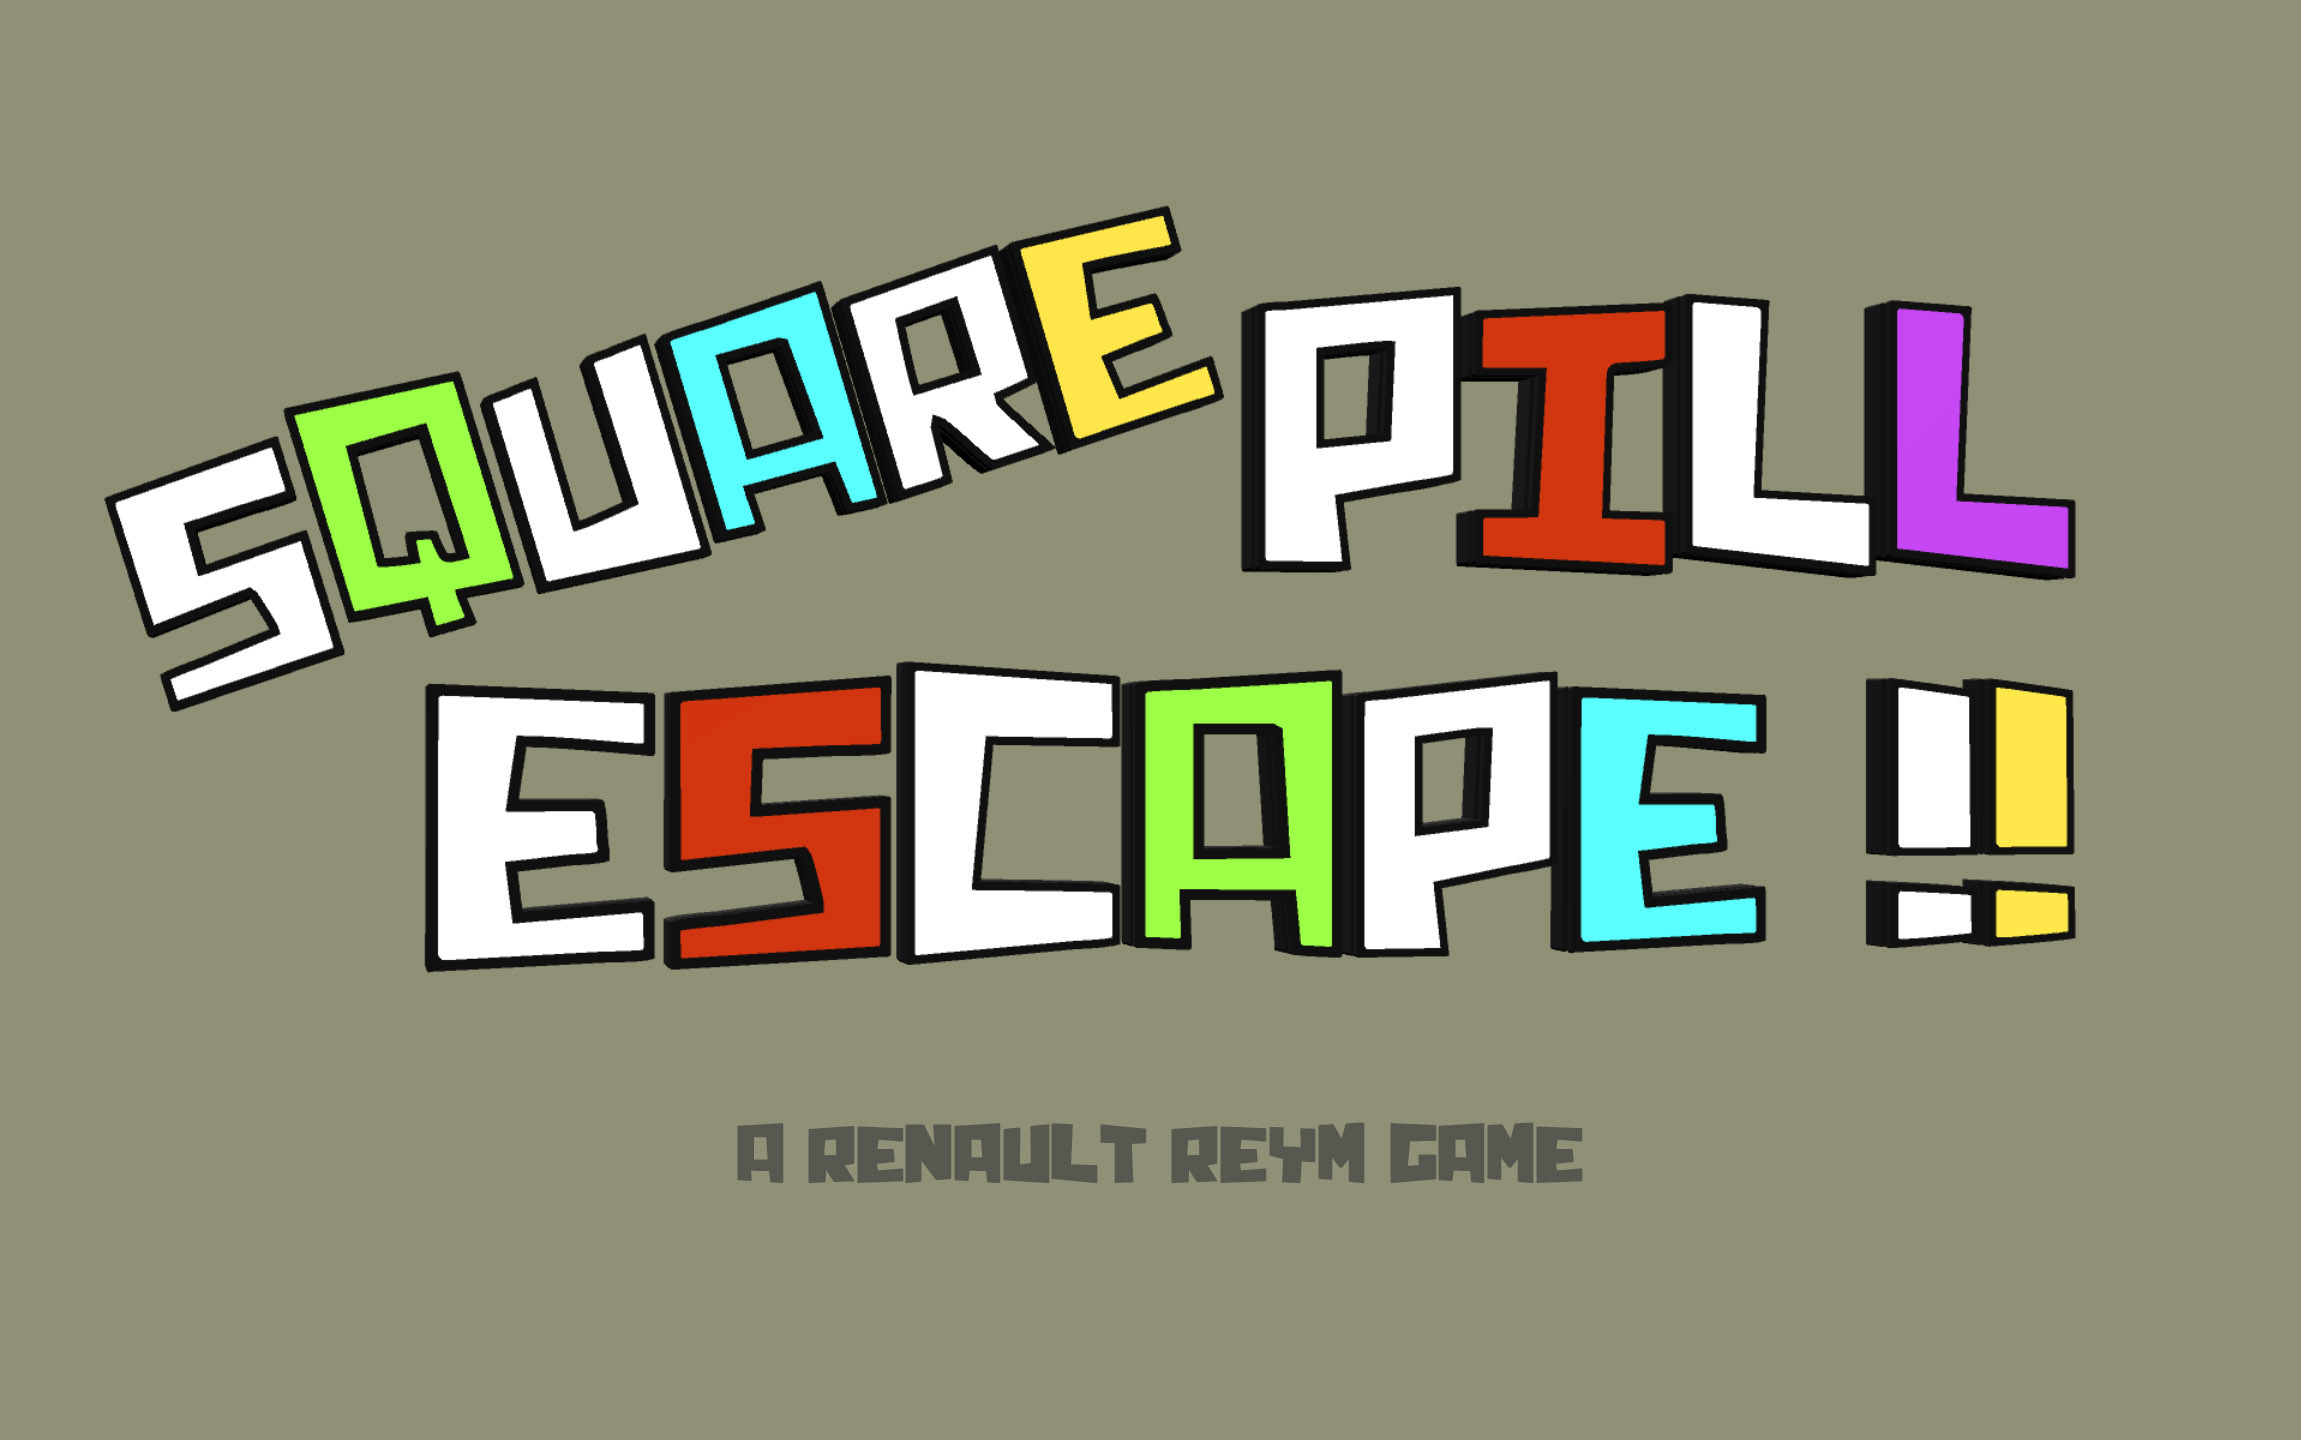 SQUARE PILL ESCAPE !!